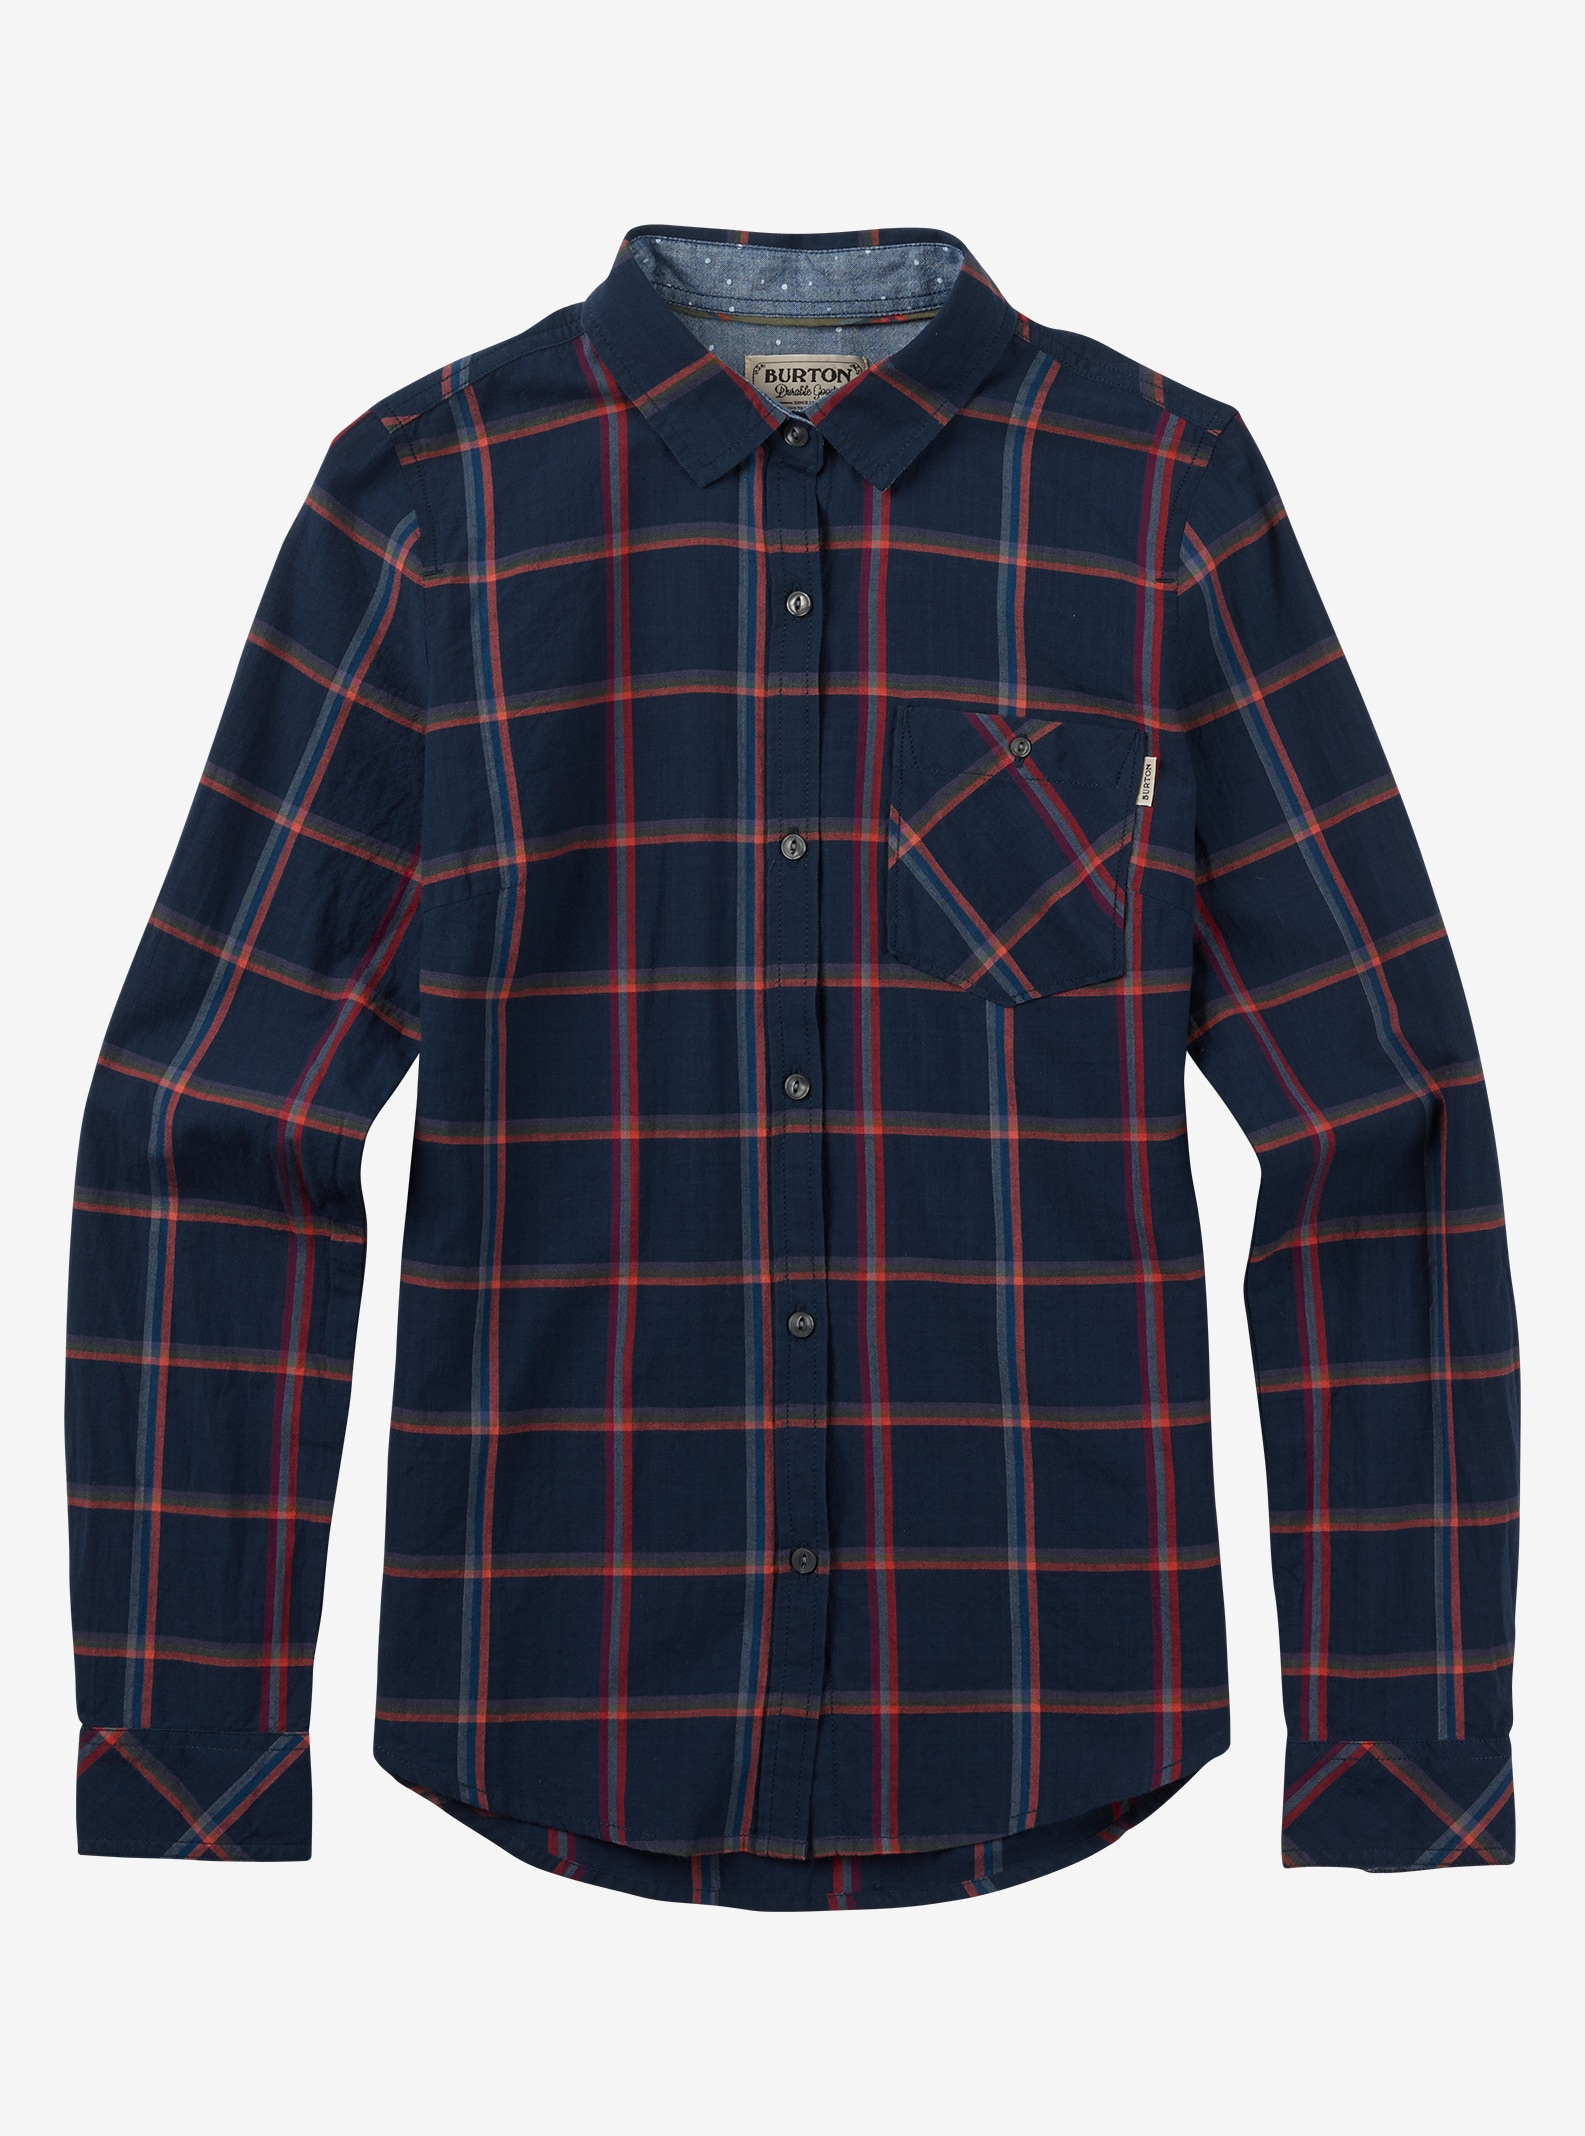 Burton Grace Long Sleeve Woven shown in Mood Indigo Bonfire